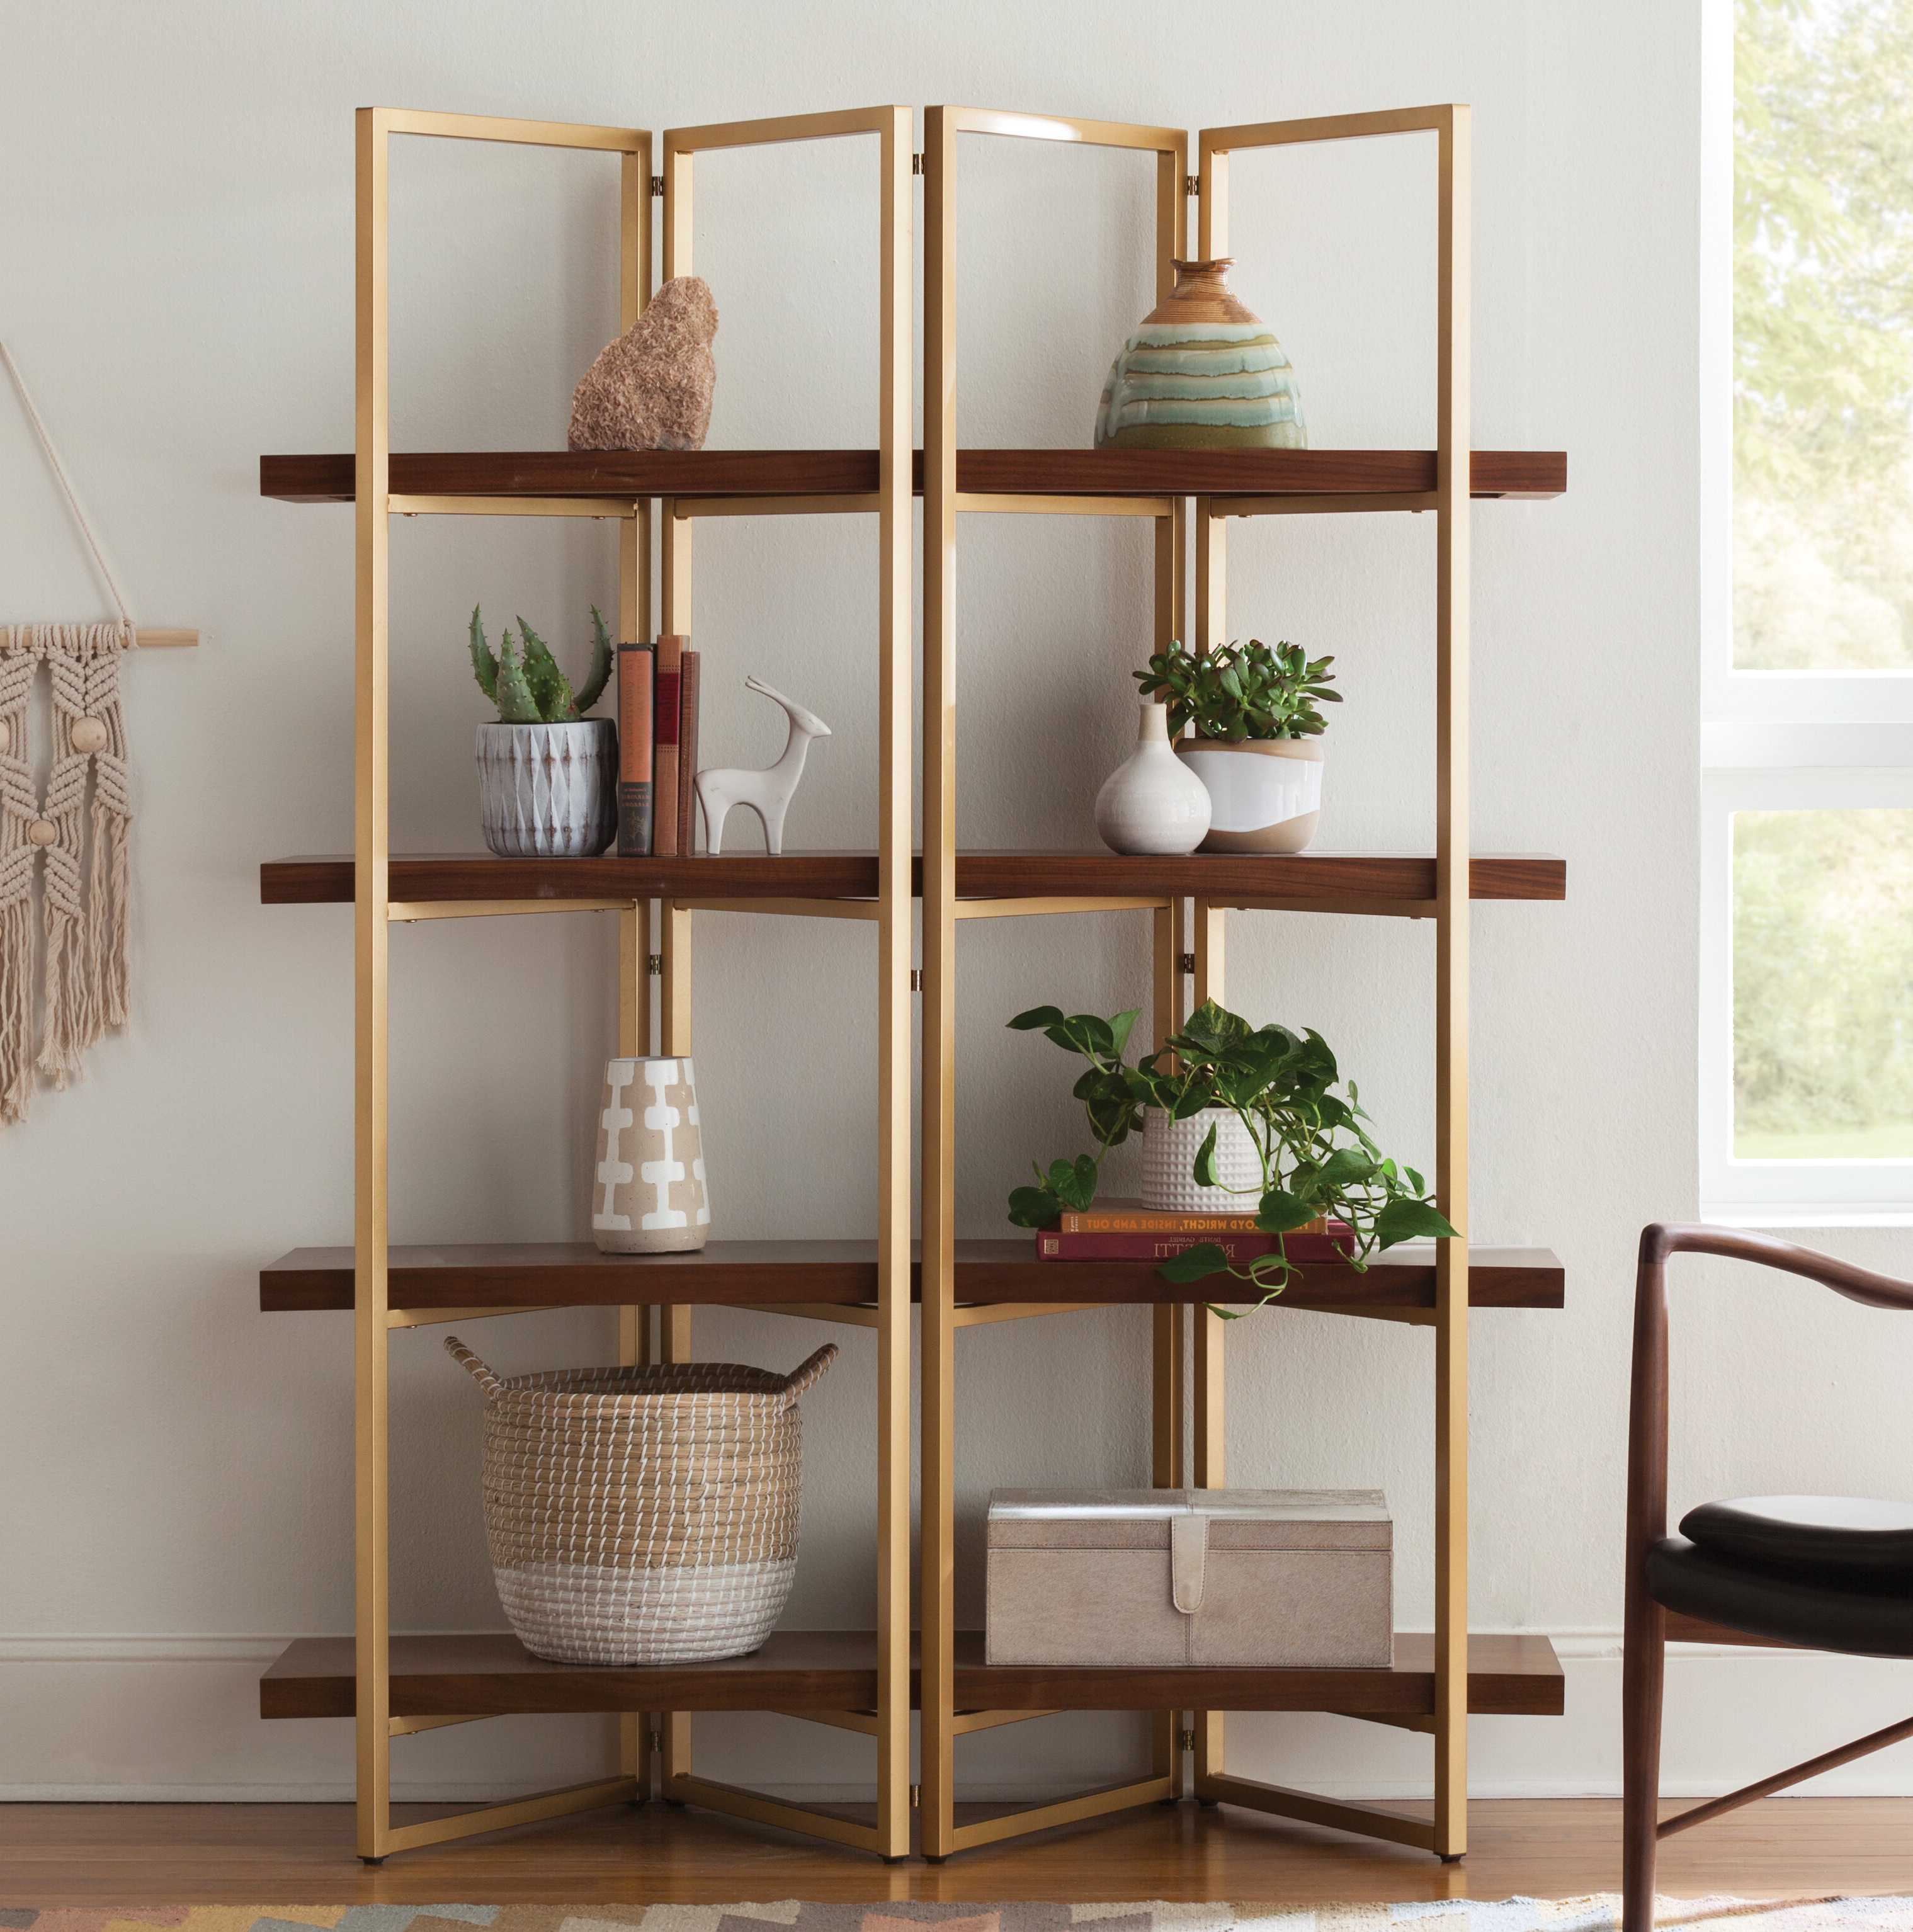 2020 Destiny Etagere Bookcases Pertaining To Rhem Etagere Bookcase (View 10 of 20)